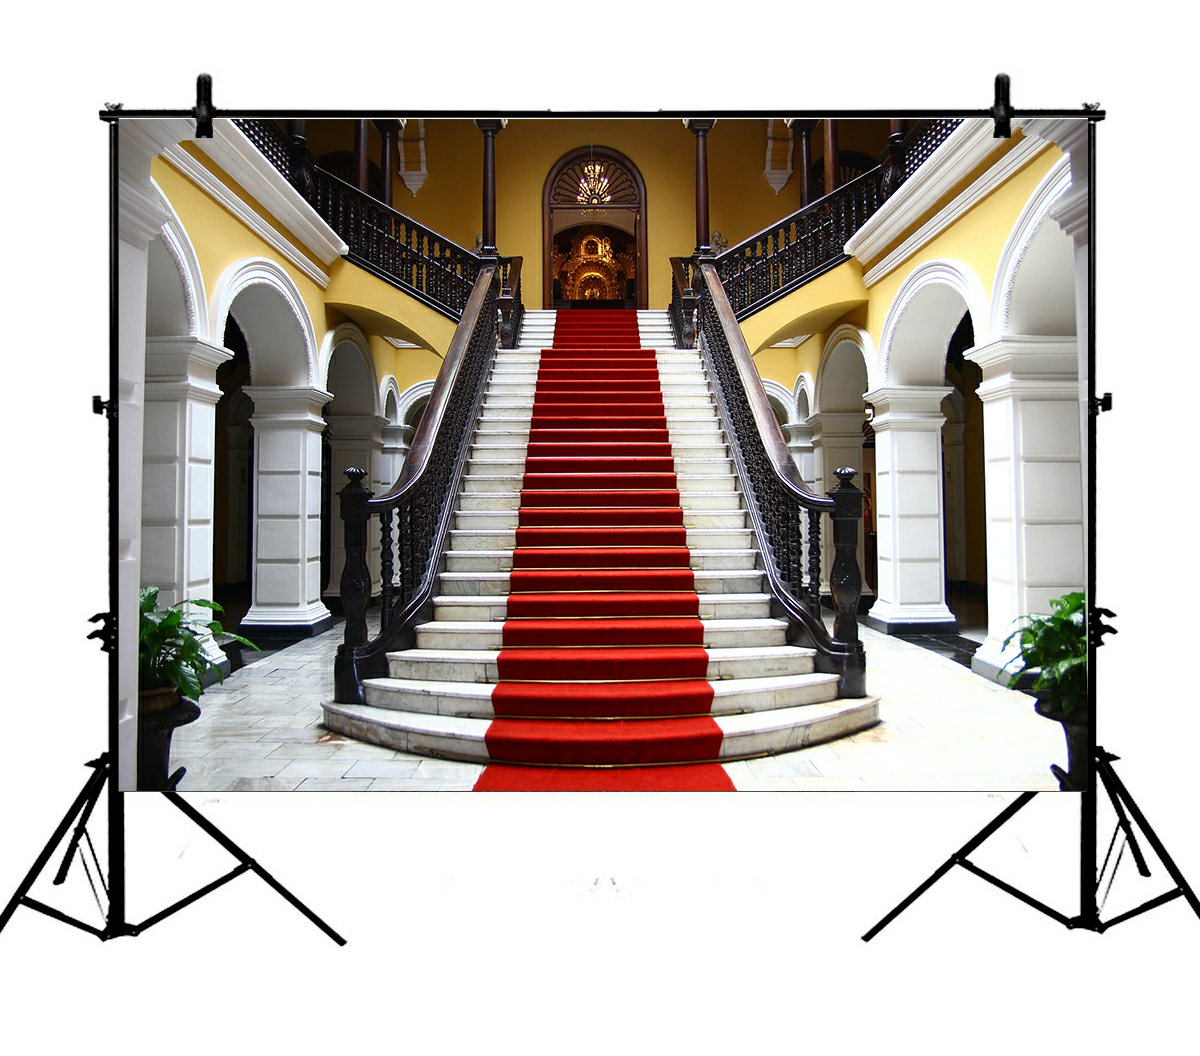 5x7ft Luxury Palace Elegant Stair Red Carpet European Building Polyester Photo Background Portrait Backdrop